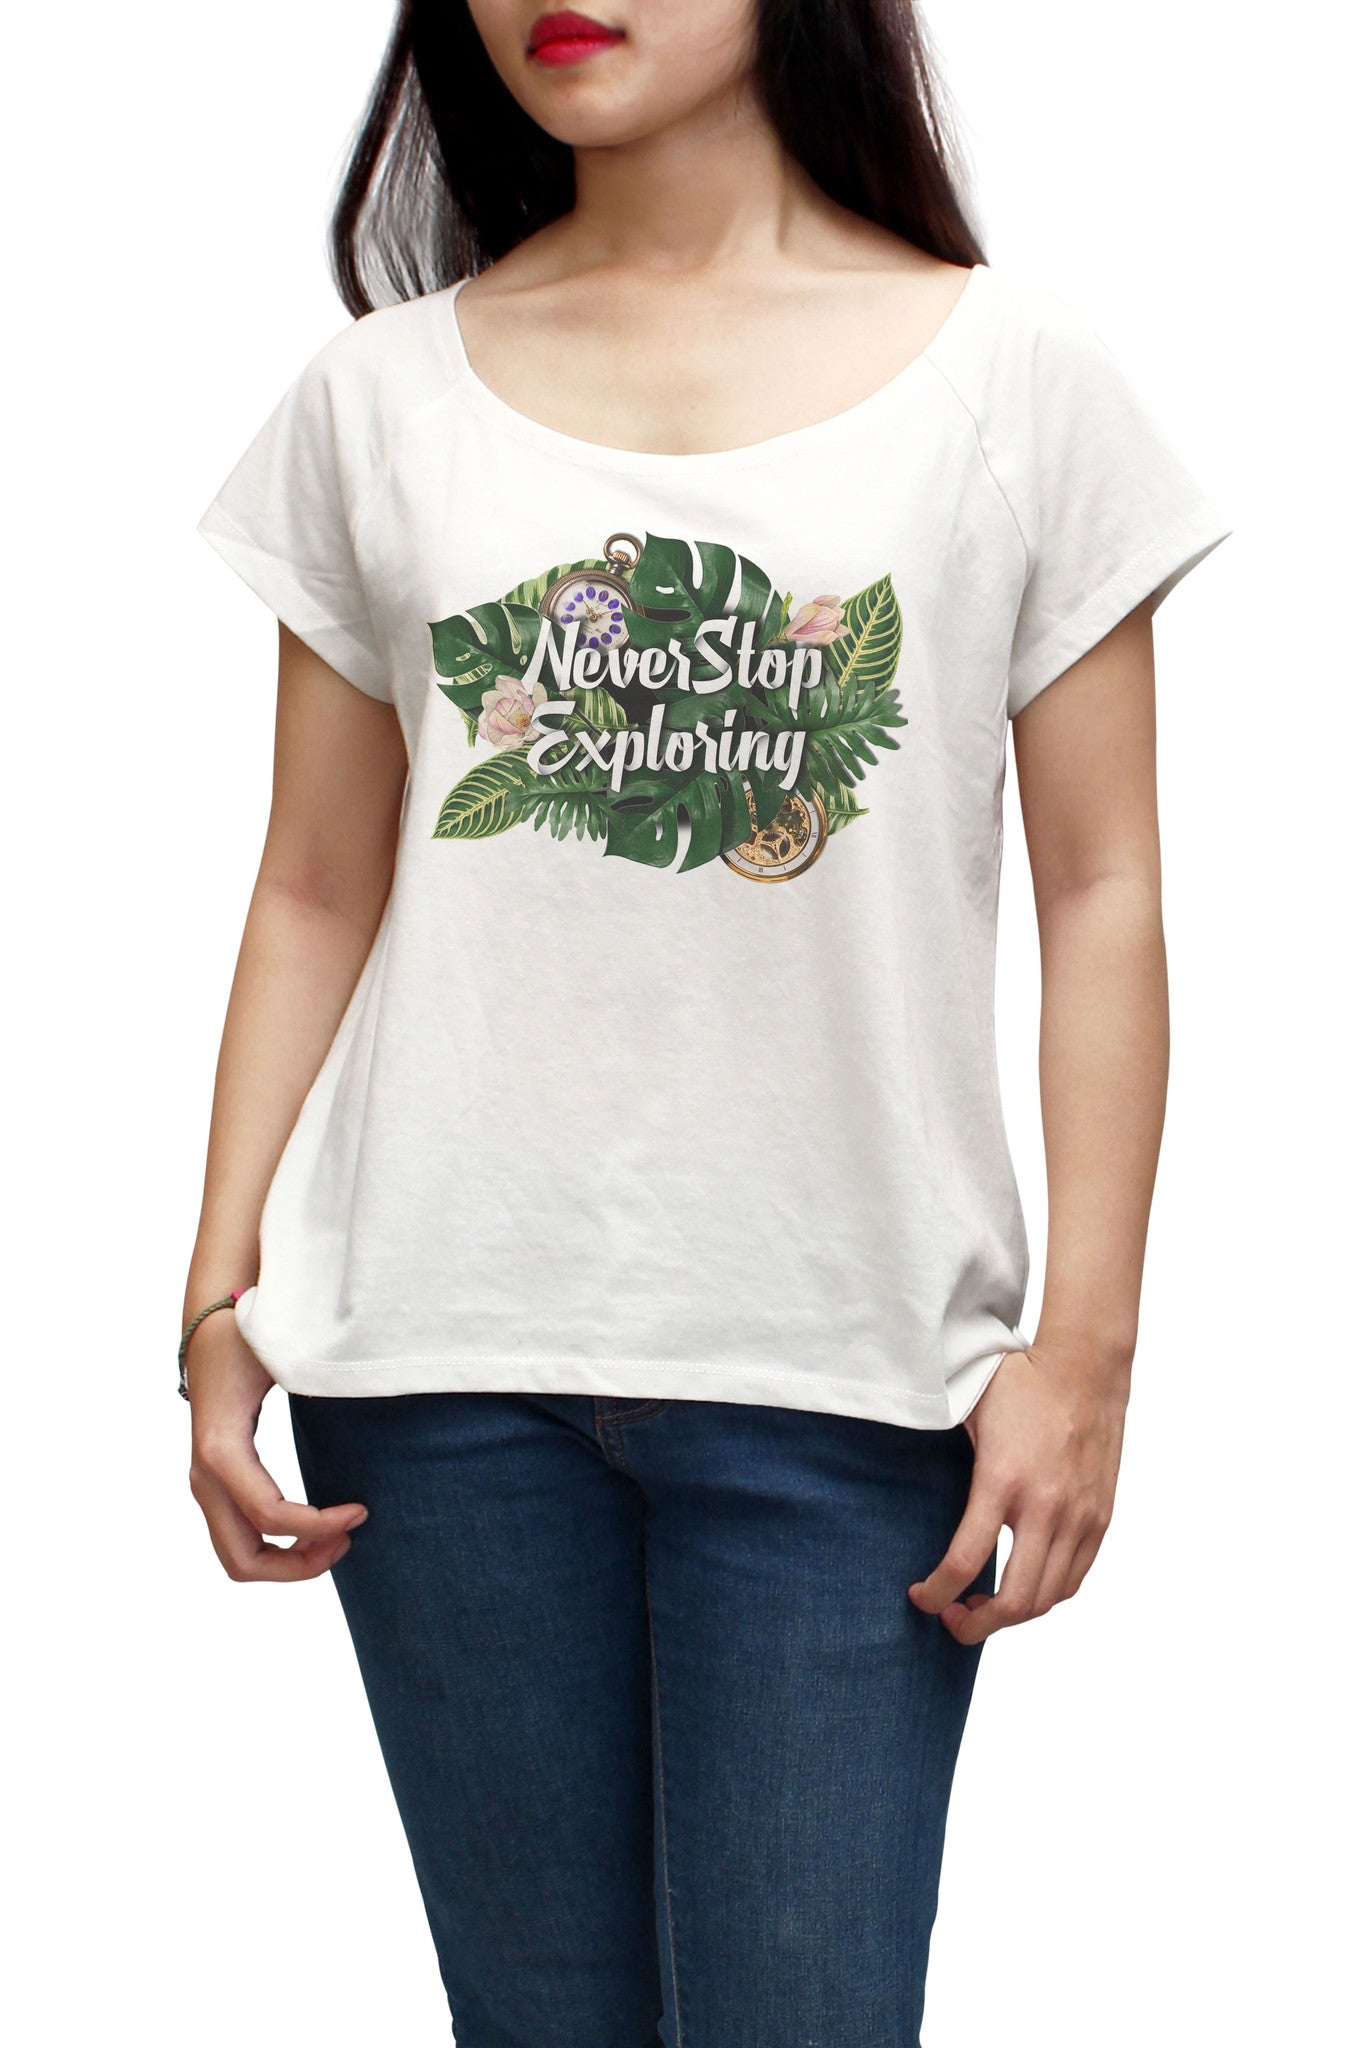 Women Never Stop Exploring Printed Short Sleeves T-shirt WTS_01